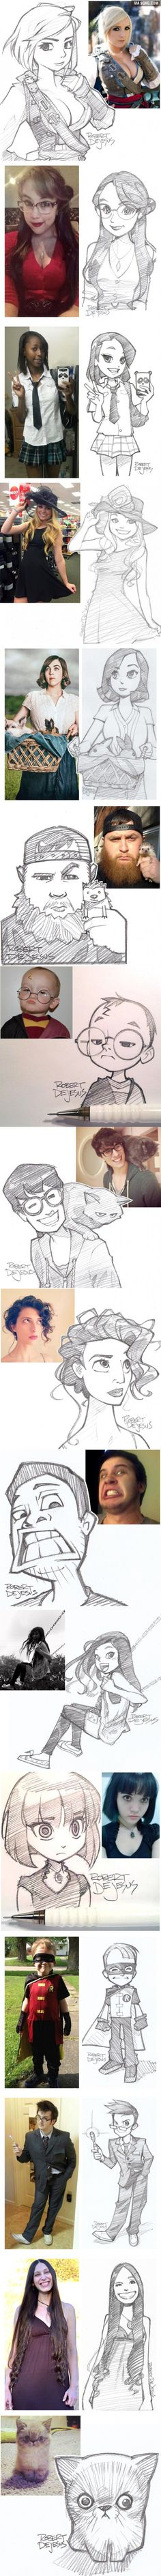 People And Their Cartoon Version